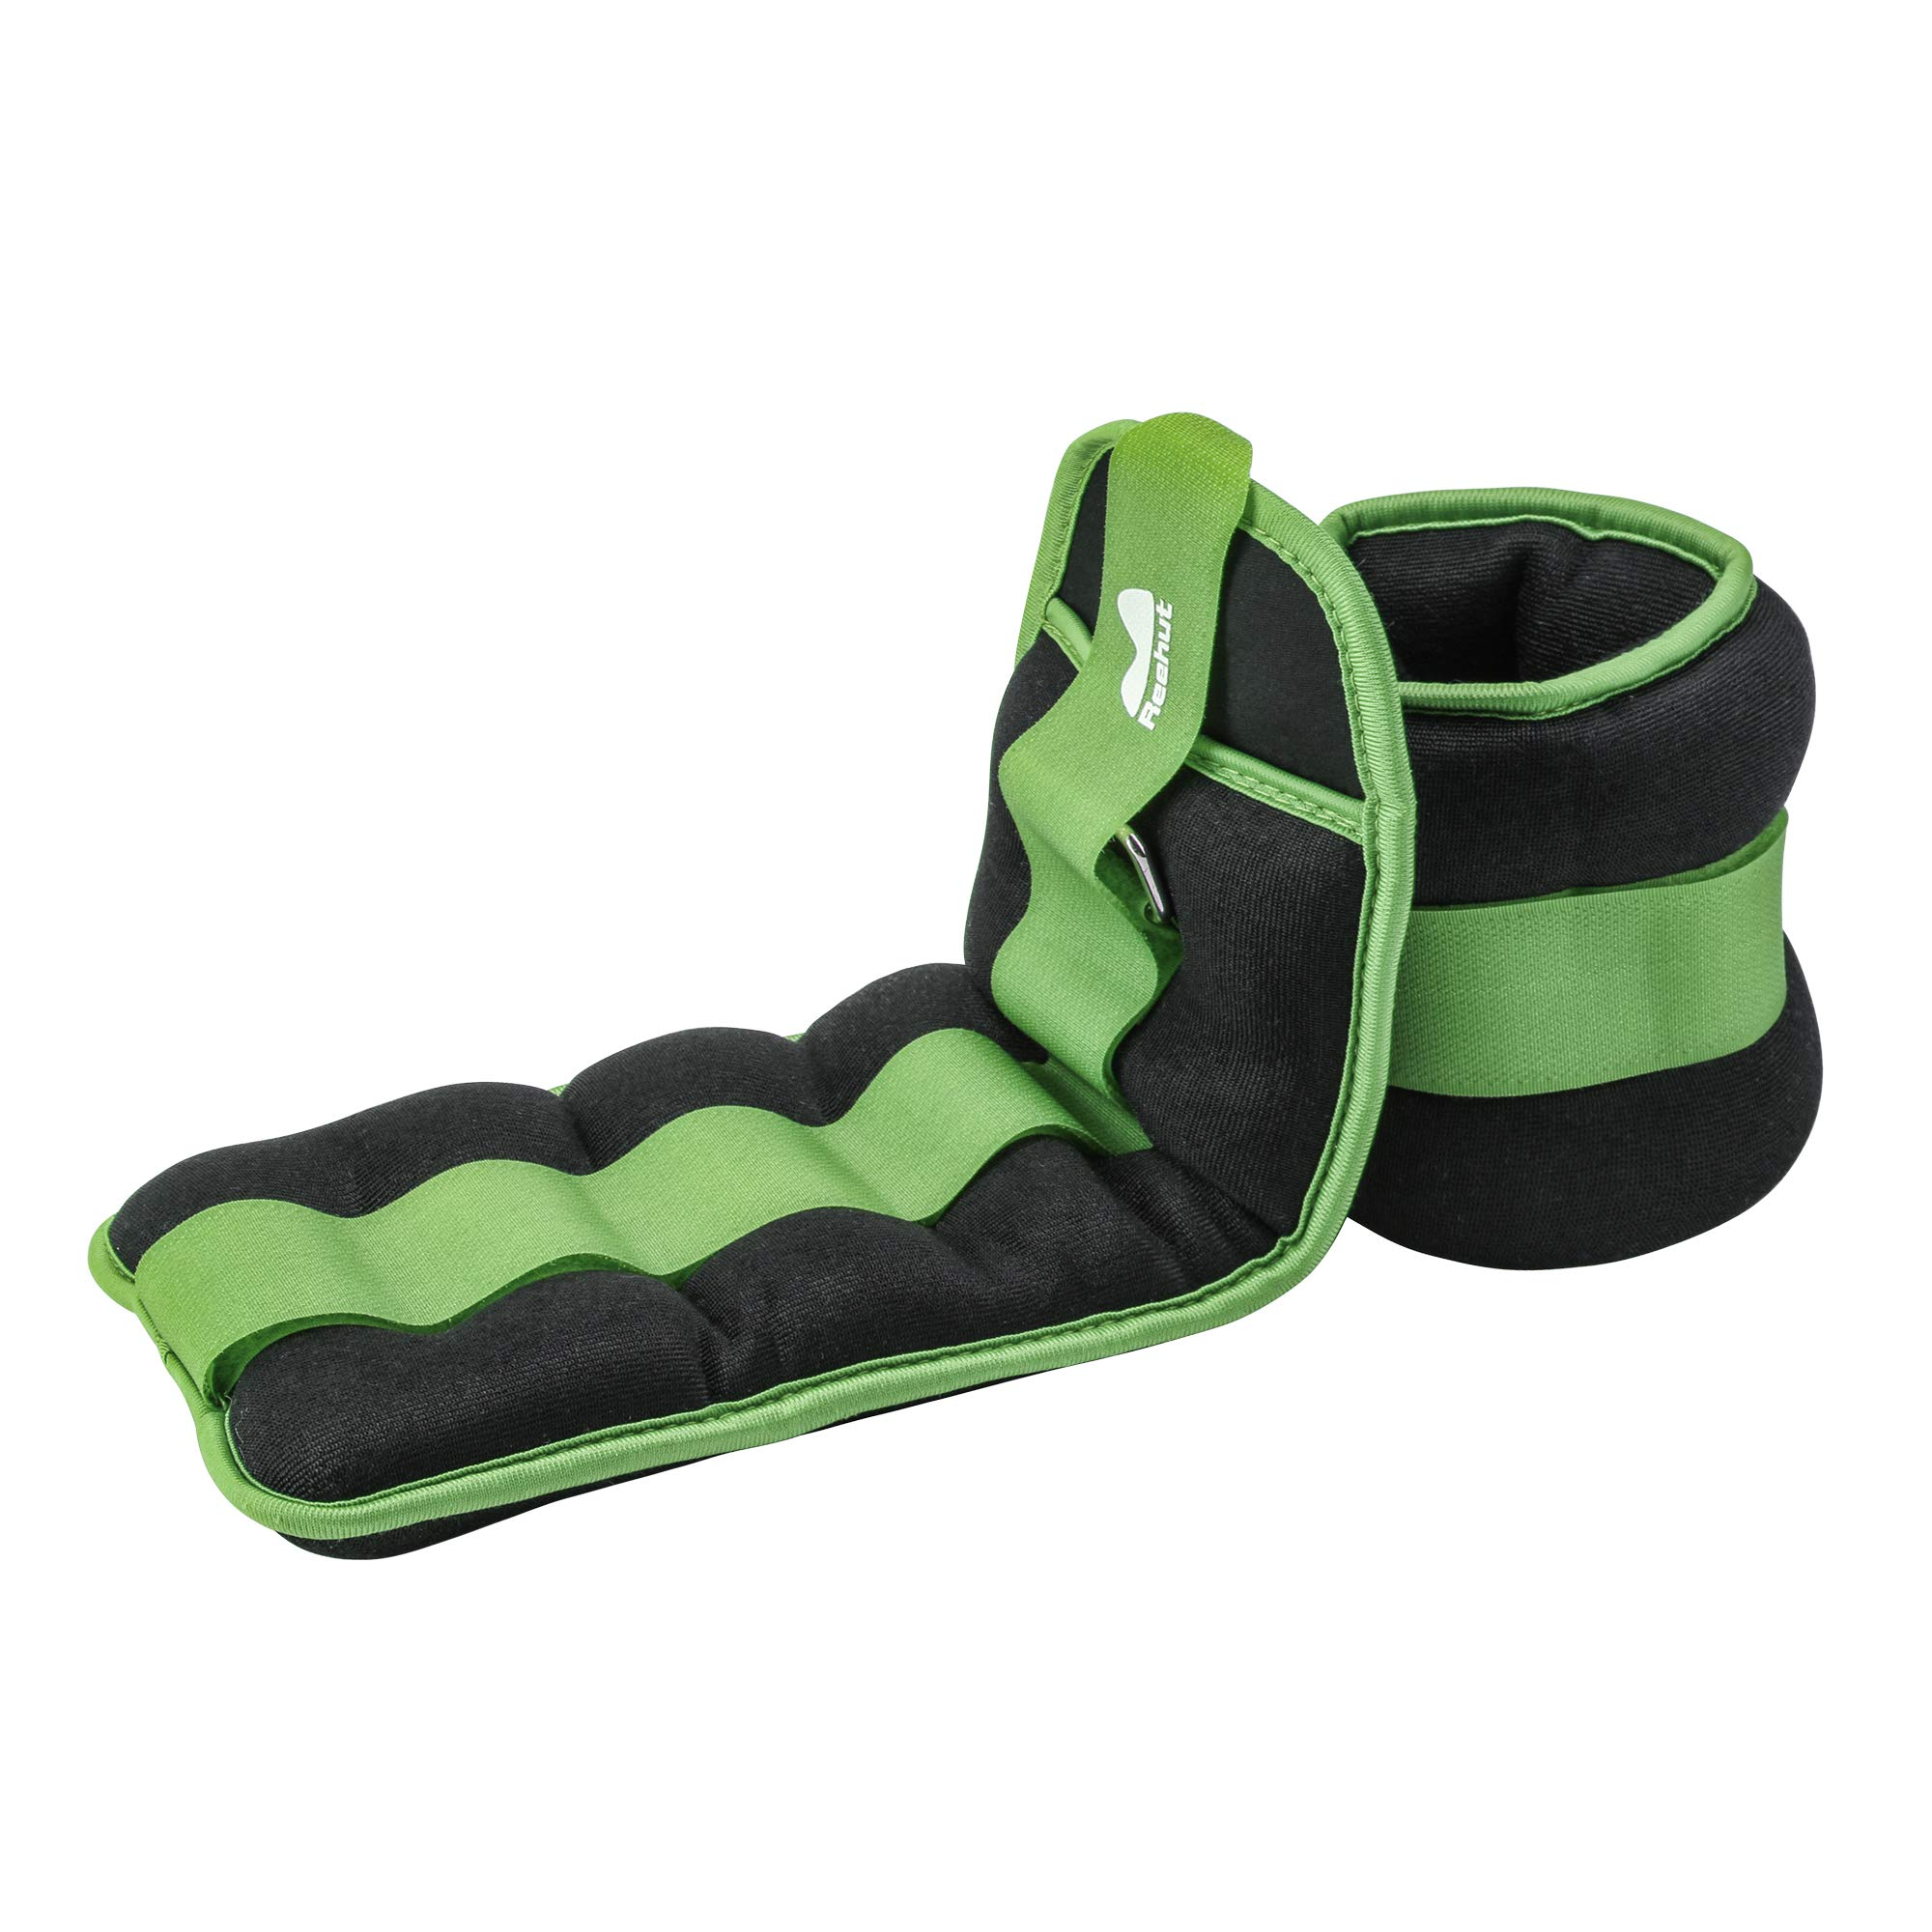 REEHUT Ankle Weights, Durable Wrist Weight (1 Pair) w/Adjustable Strap for Fitness, Exercise, Walking, Jogging, Gymnastics, Aerobics, Gym - Green - 2 lbs Pair (1 lbs Each)